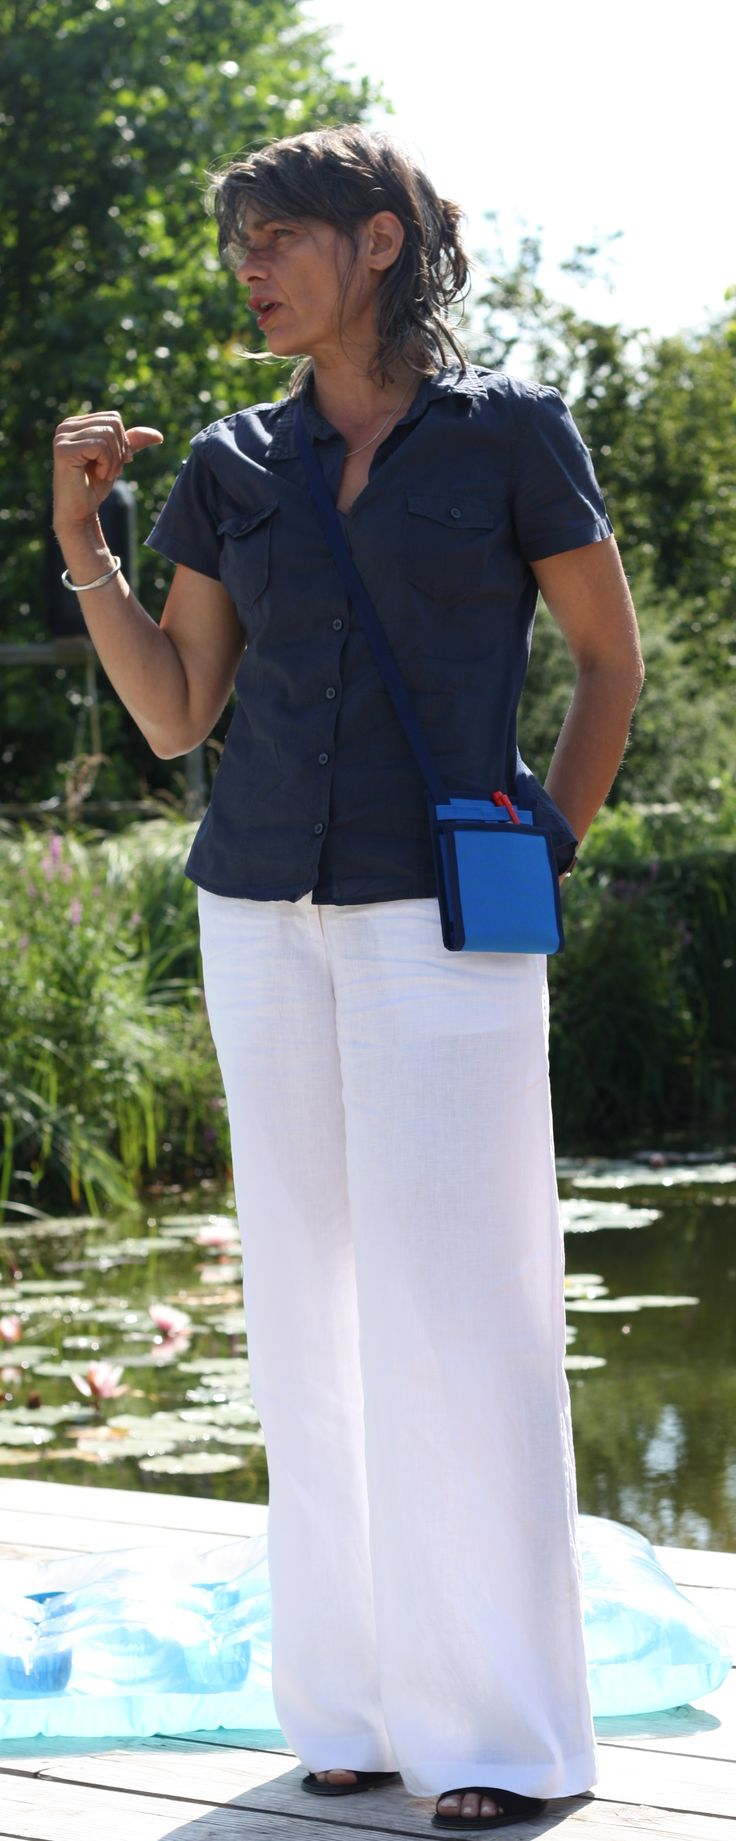 Ti Sac Bleu Horizon - Collection 2017 - [EN] Looking for a convenient and attractive clutch for this summer ? This small blue handbag with its sailing style clutch is the ideal bag - [FR] Vous recherchez un sac séduisant pour cet été ? Cette petite sacoche bandoulière bleue, avec son style marin, sera votre alliée pour cet été 2017 #tisac #sacoche_bandouliere #style_marin #sailing_style_clutch More collections > https://www.tisac.shop